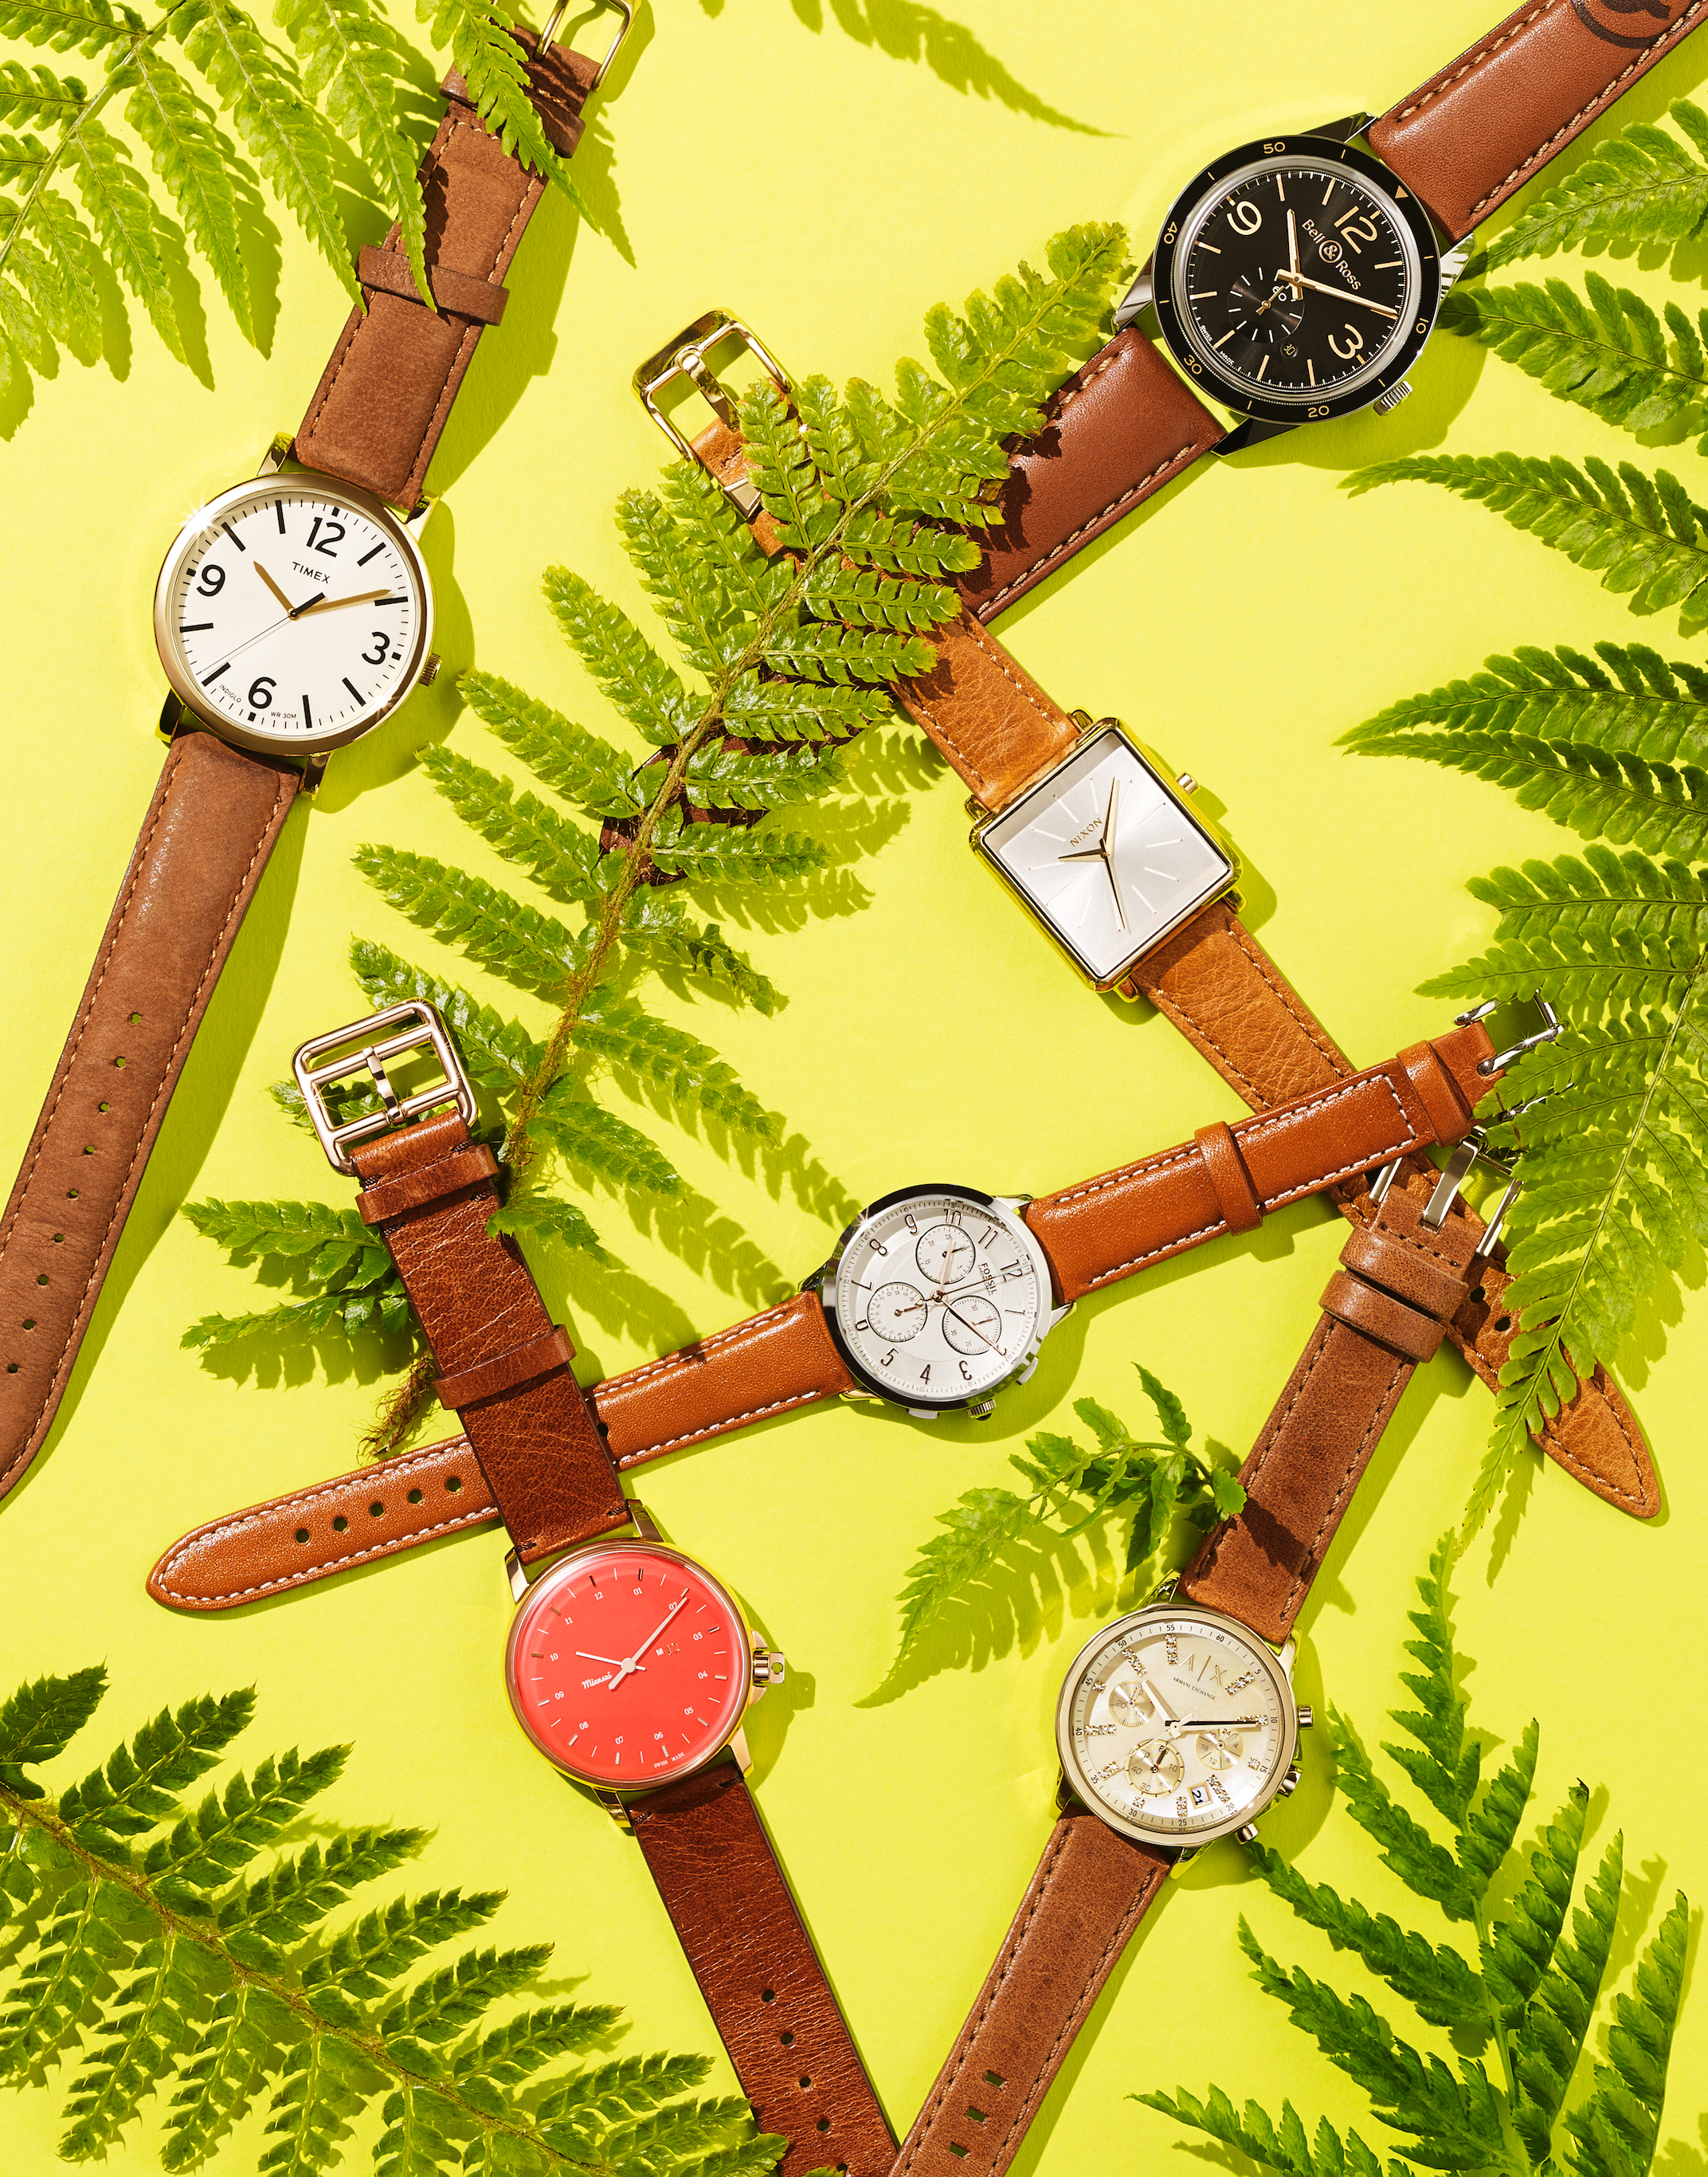 STY 70 TAN LEATHER WATCHES copy.jpg